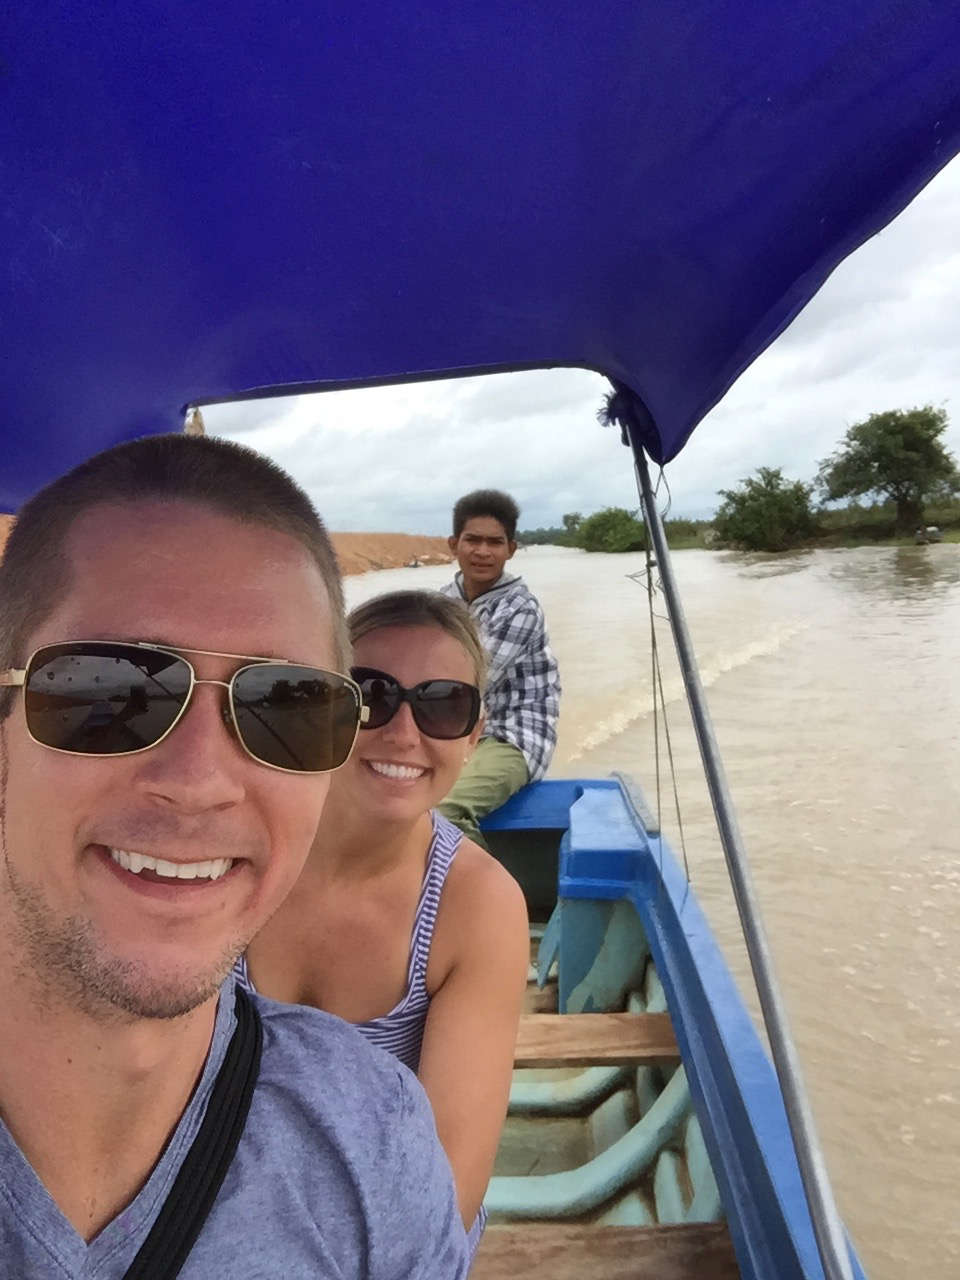 Boat Number One Of Three On The Way To The Floating Village In Siem Reap, Cambodia